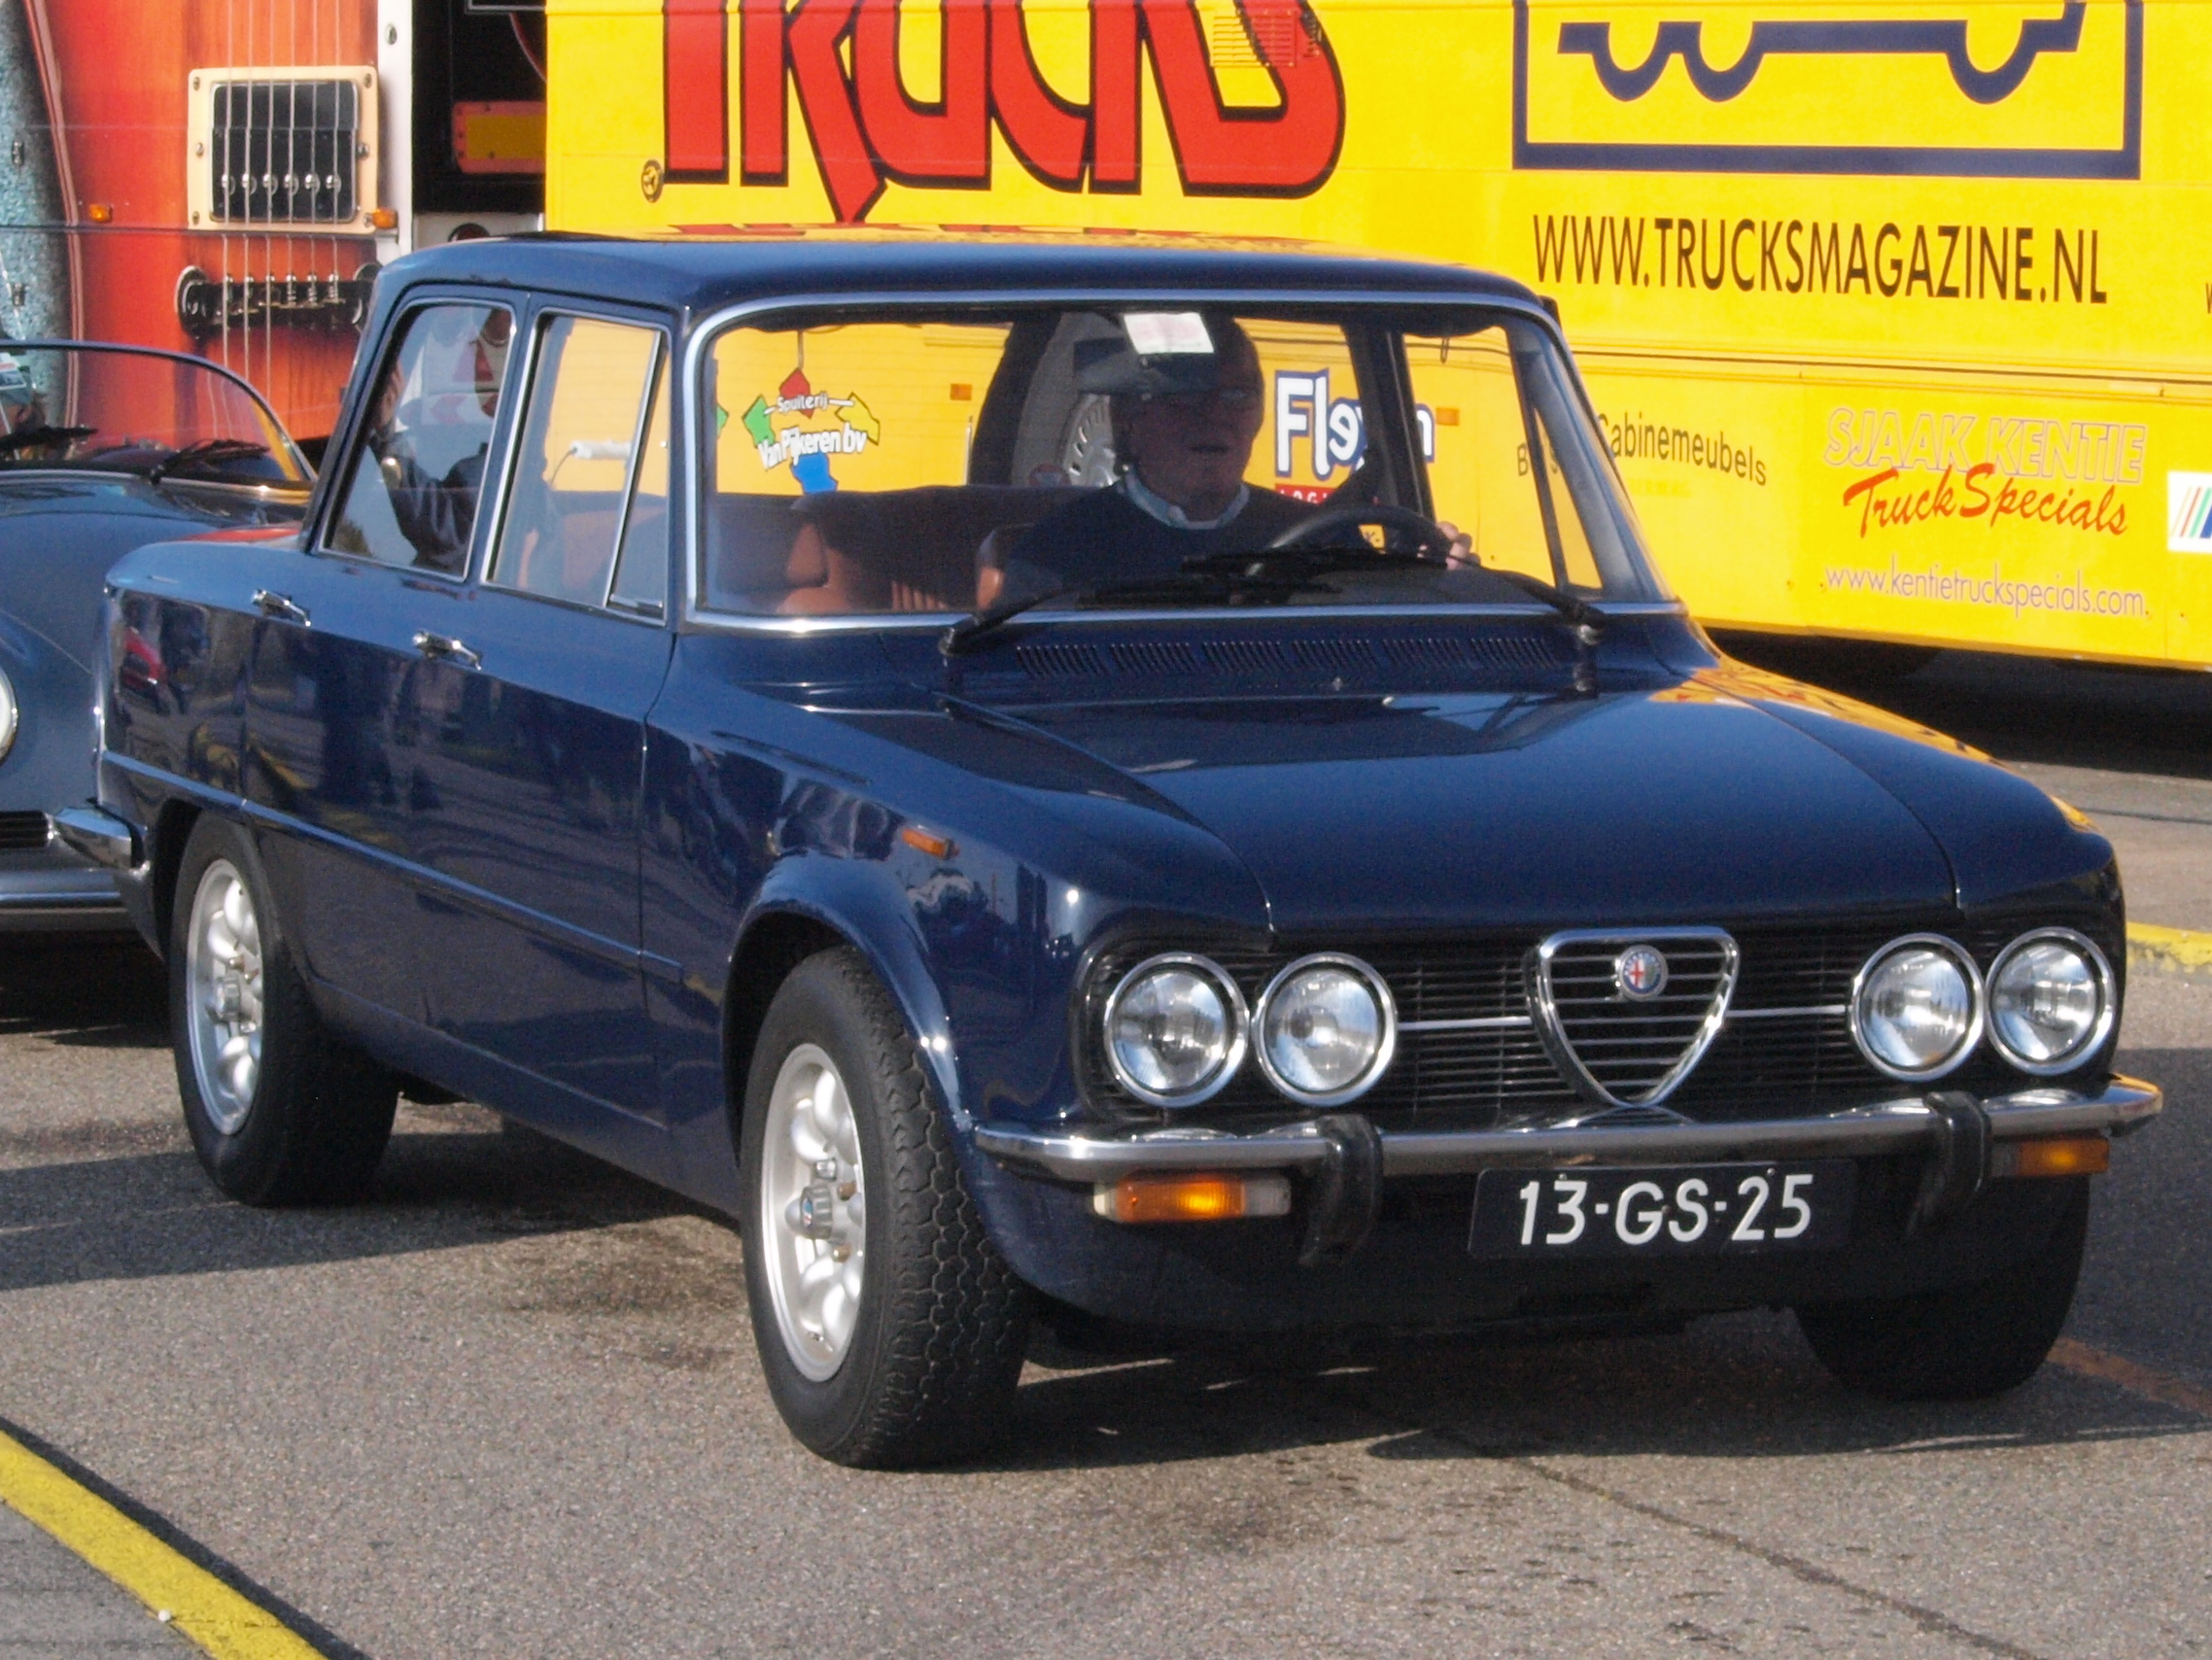 file alfa romeo giulia super 1 6 lusso dutch licence registration 13 gs 25 pic3 jpg wikimedia. Black Bedroom Furniture Sets. Home Design Ideas